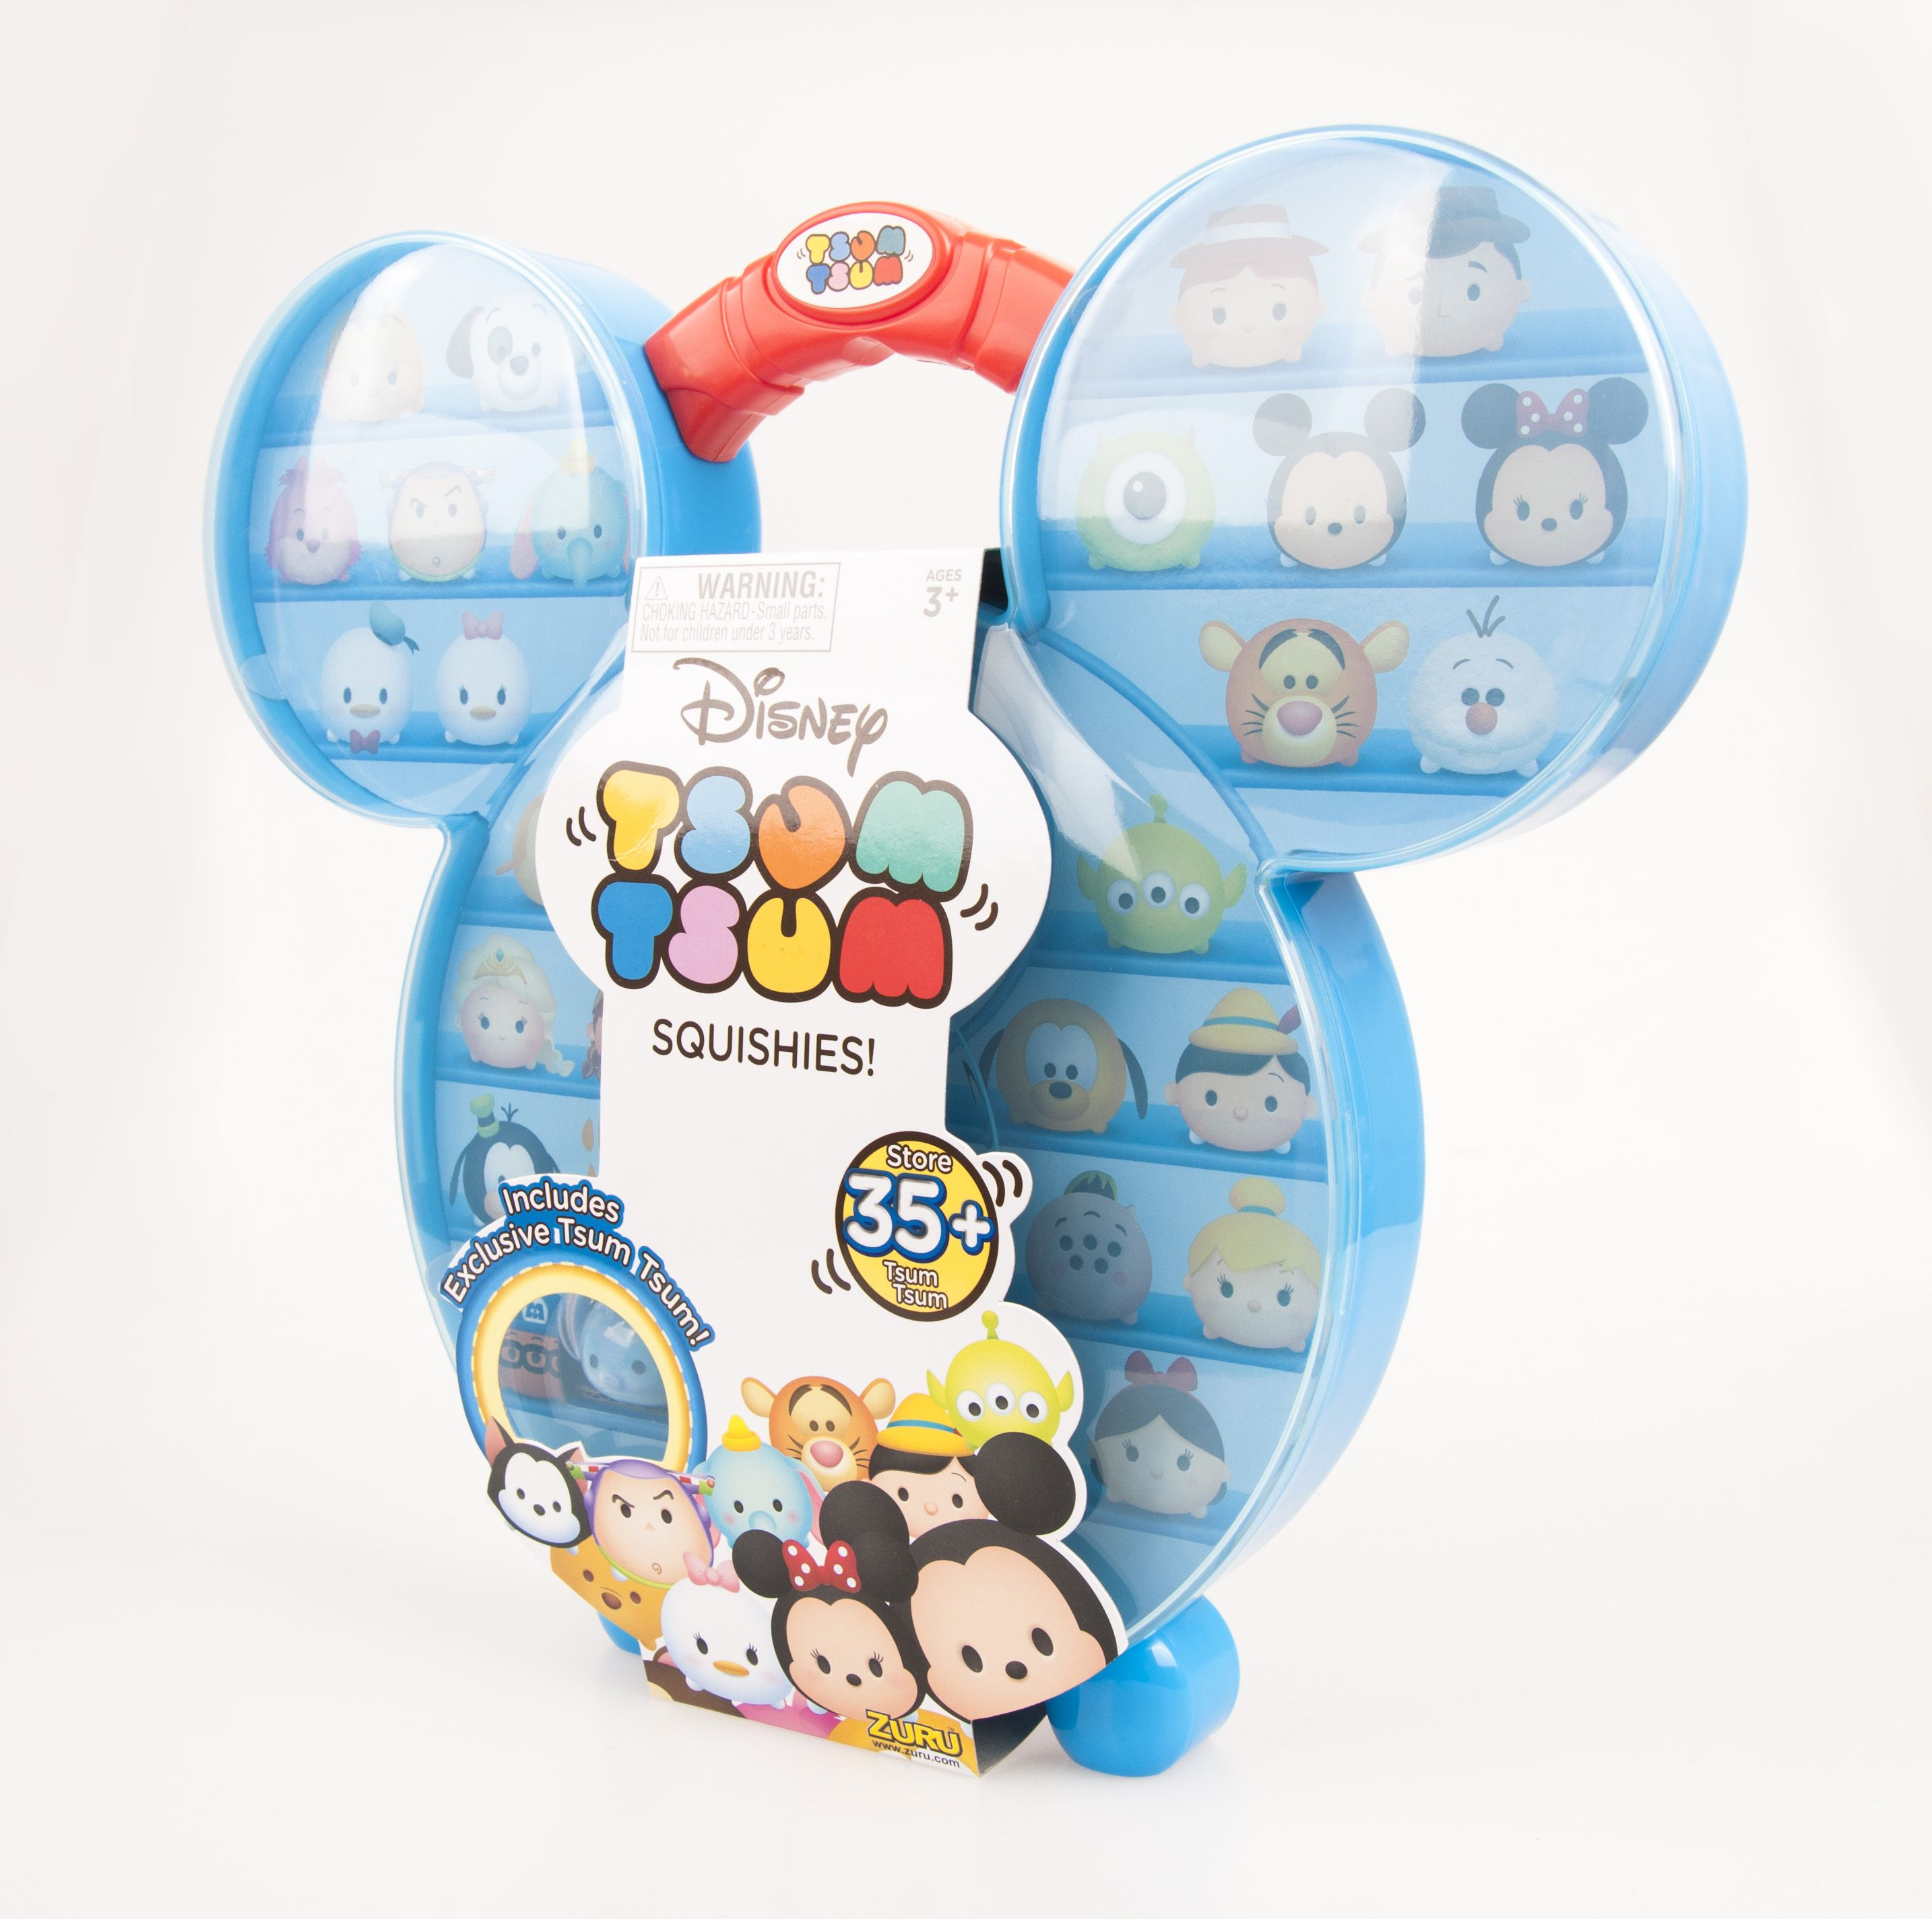 Disney Tsum Tsum Squishies Carry Case With Bonus Pack Fuzzy Feel